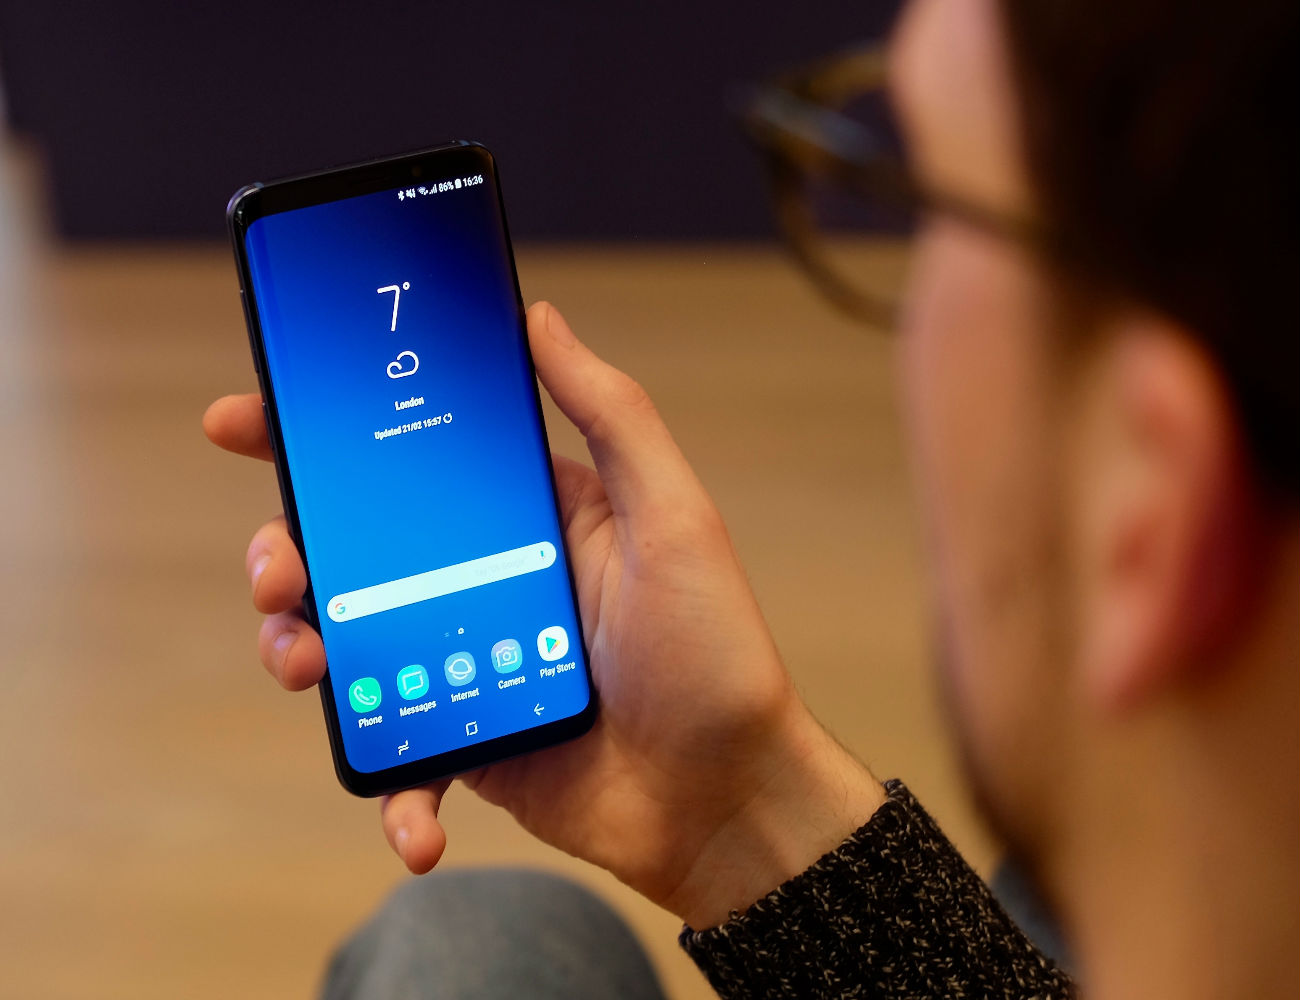 What is the best smartphone in the world right now?